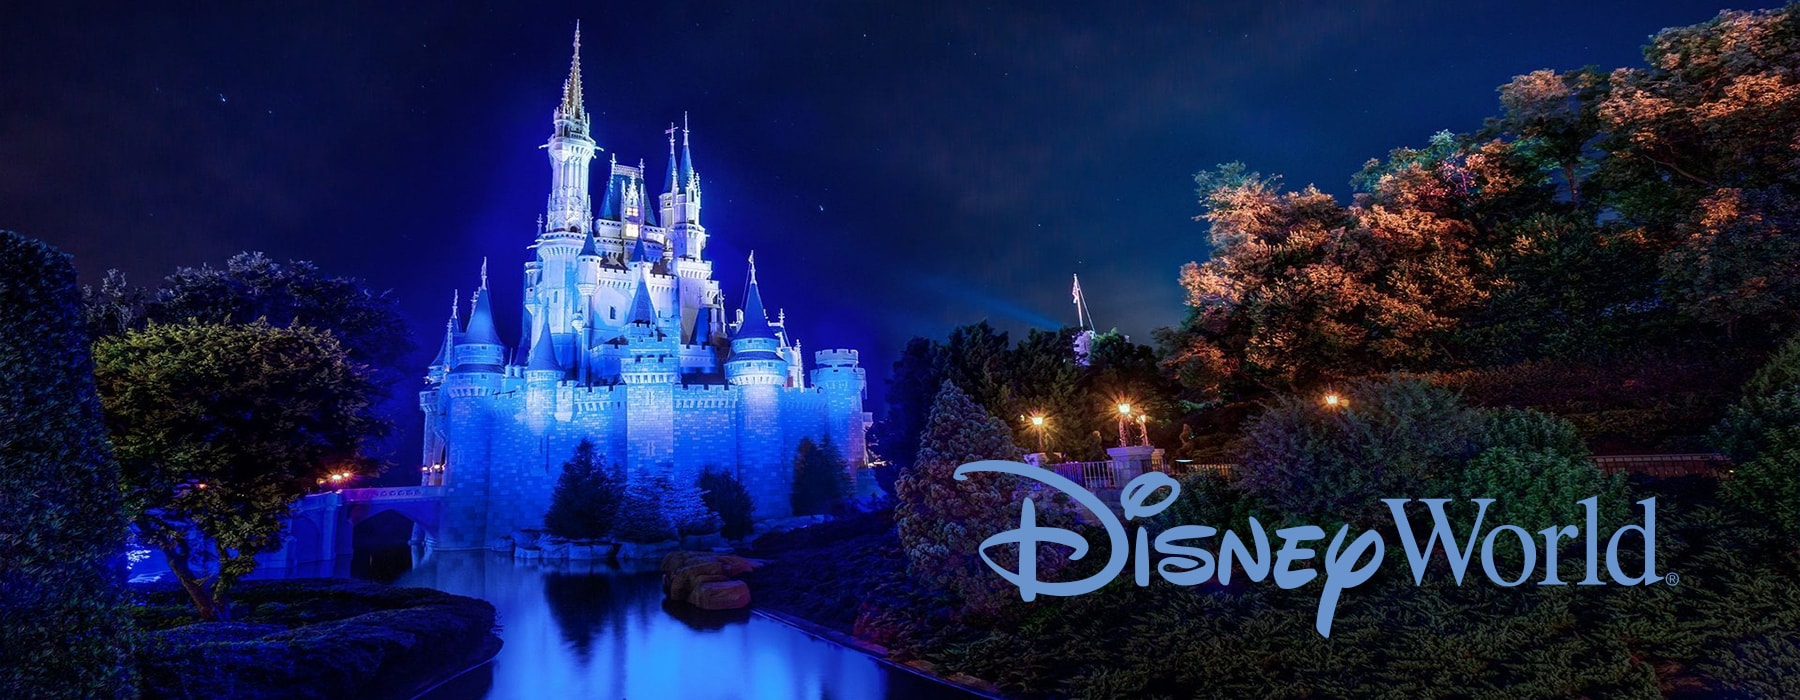 This Black Friday/Cyber Monday sale aside, if you're just wondering where to safely buy the cheapest, legitimate Walt Disney World multi-day tickets from an authorized reseller, we highly recommend ParkSavers. They usually have the best prices on discount Walt Disney World tickets, with some being significantly discounted from Walt Disney World's gate prices!